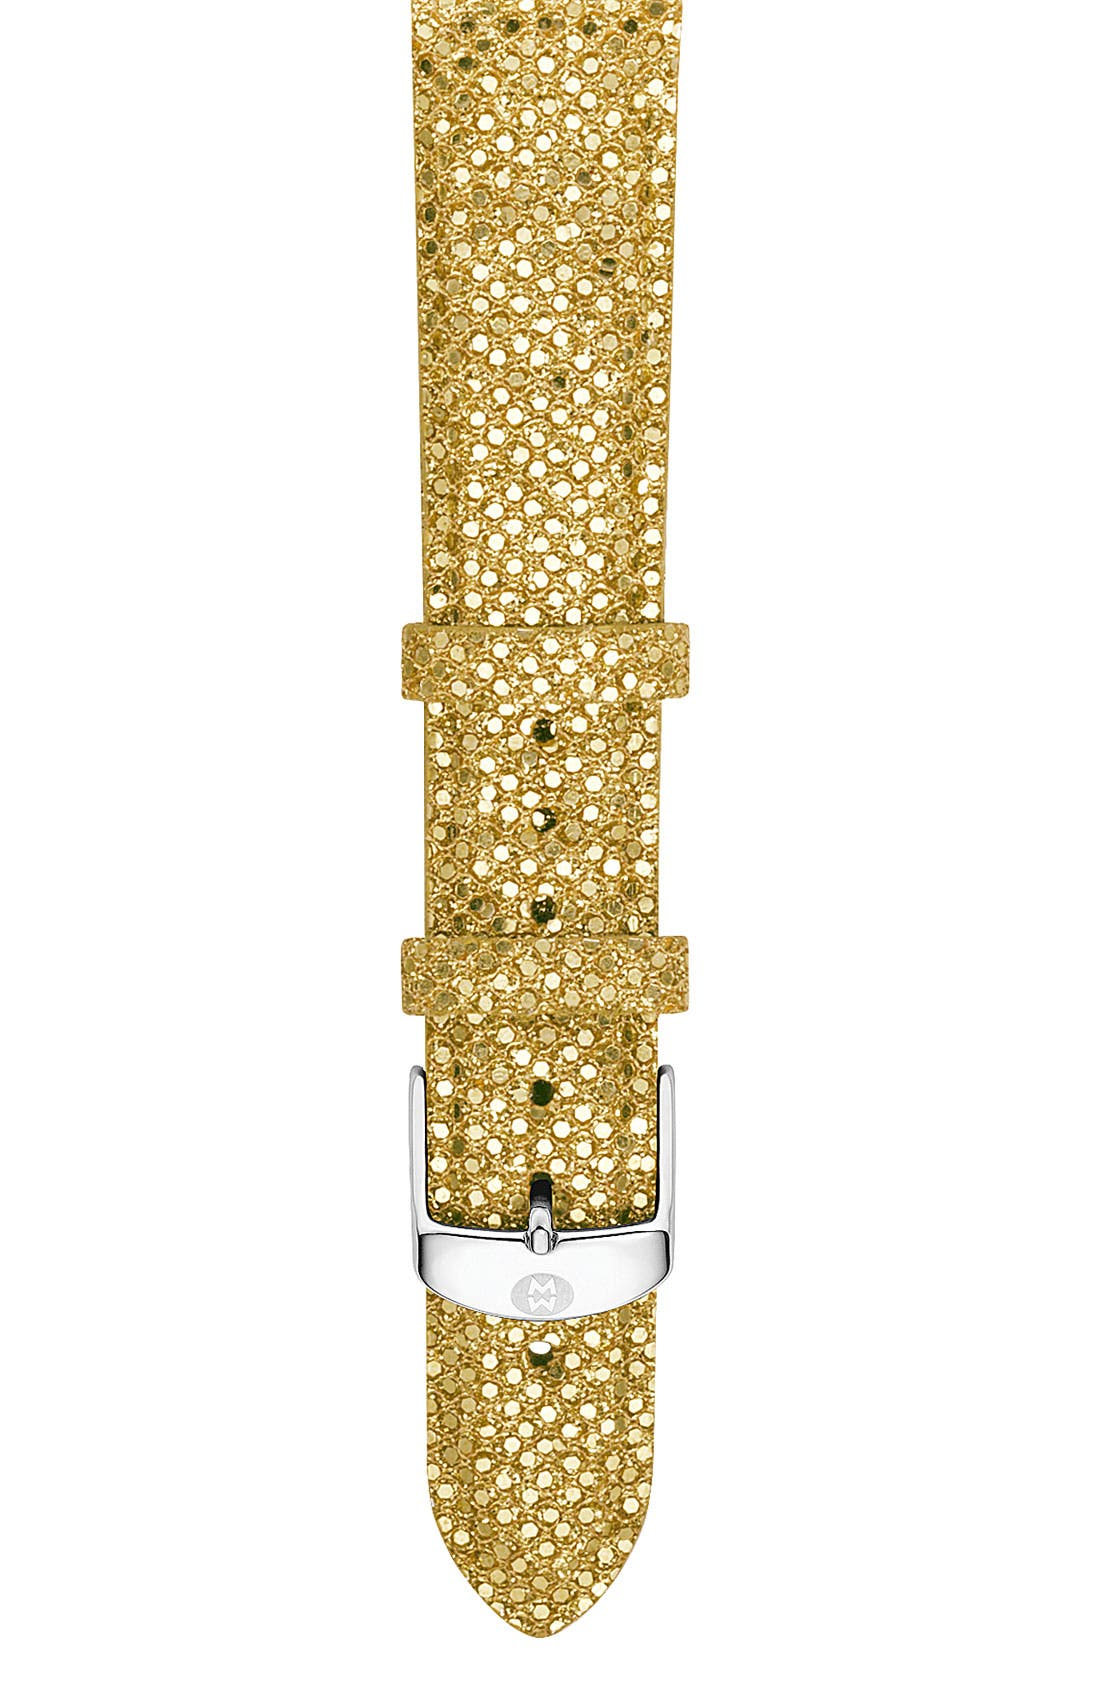 Main Image - MICHELE 16mm Sequin Watch Strap